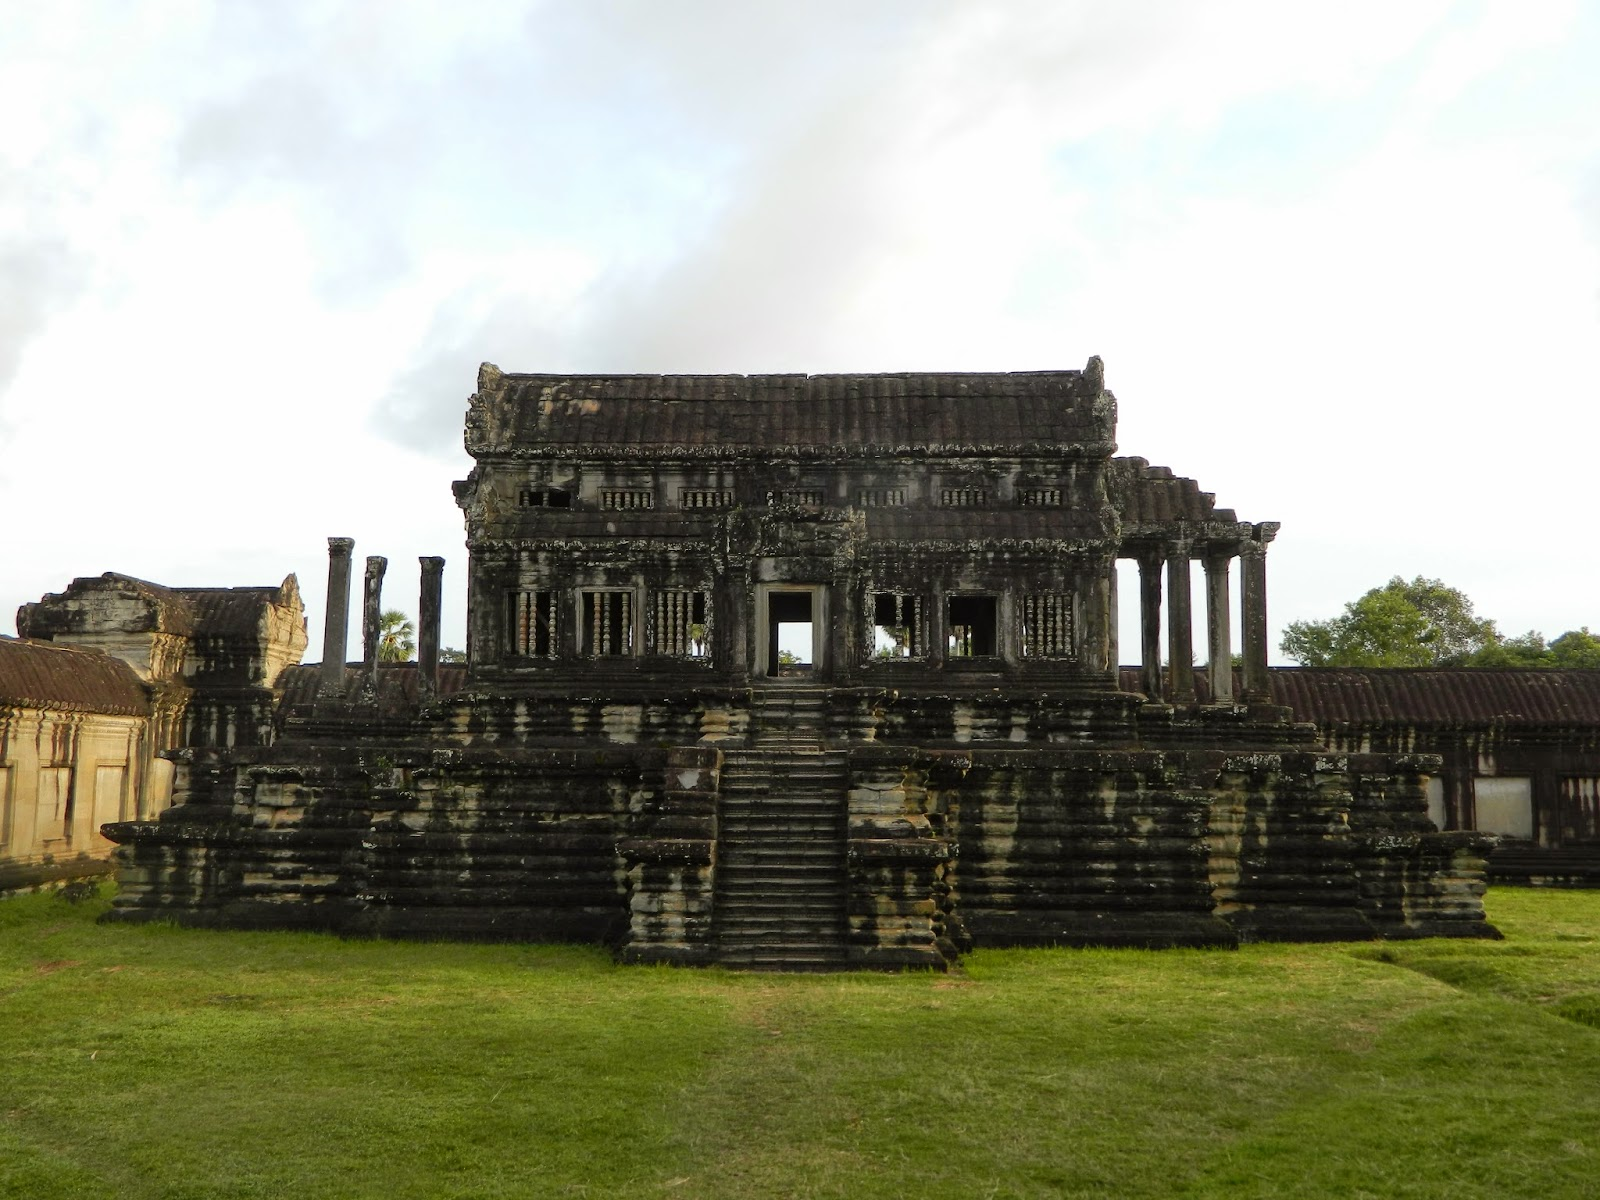 More ruins close to the Temple